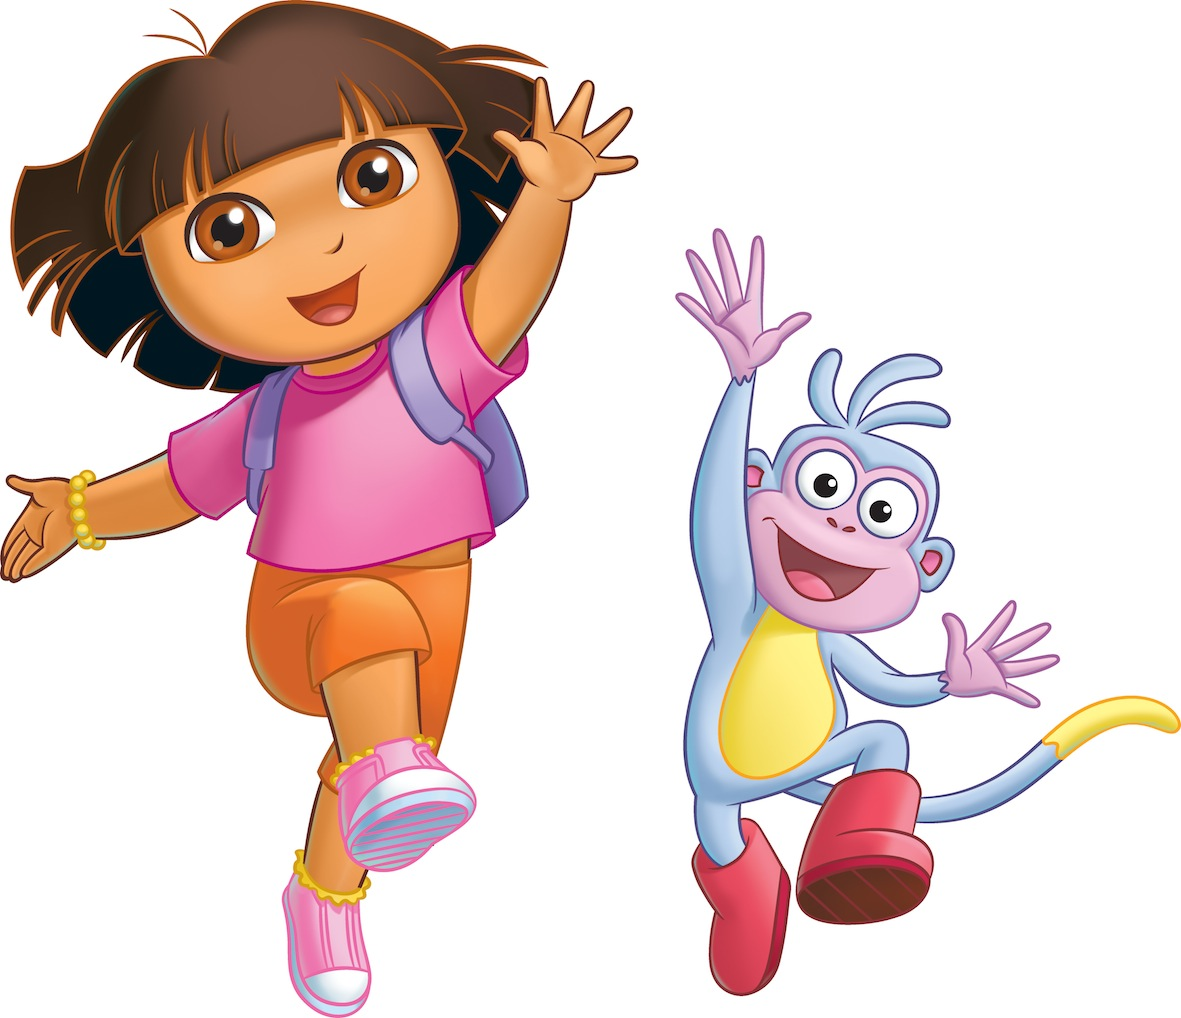 From Dora the Explorer